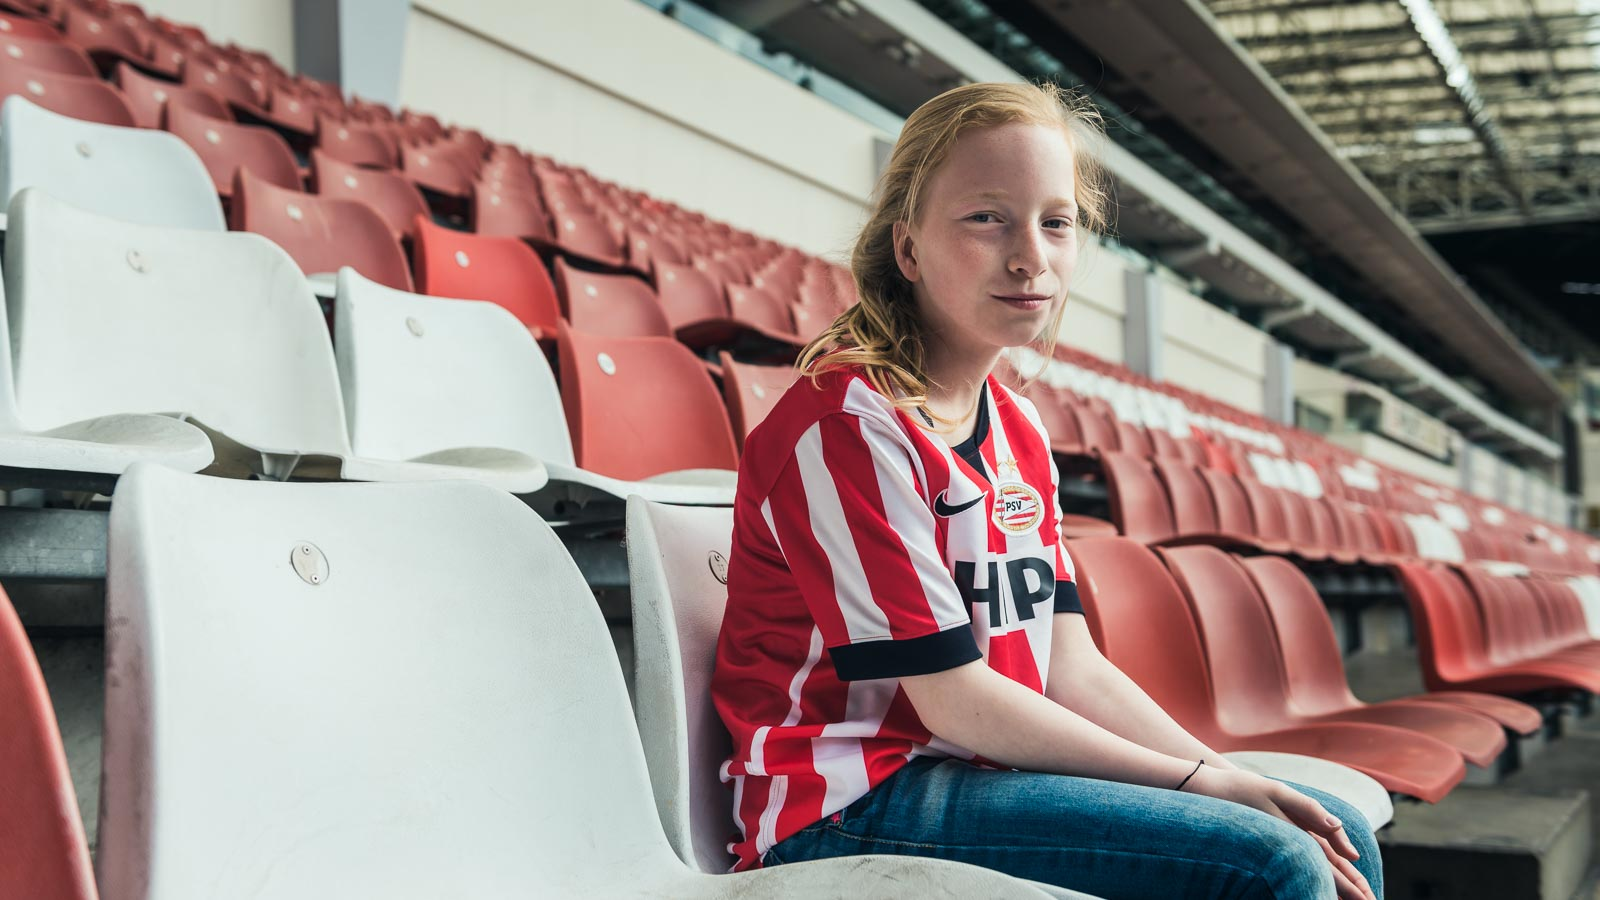 Young fan in the Philips Stadium for a PSV Eindhoven marketing campaign